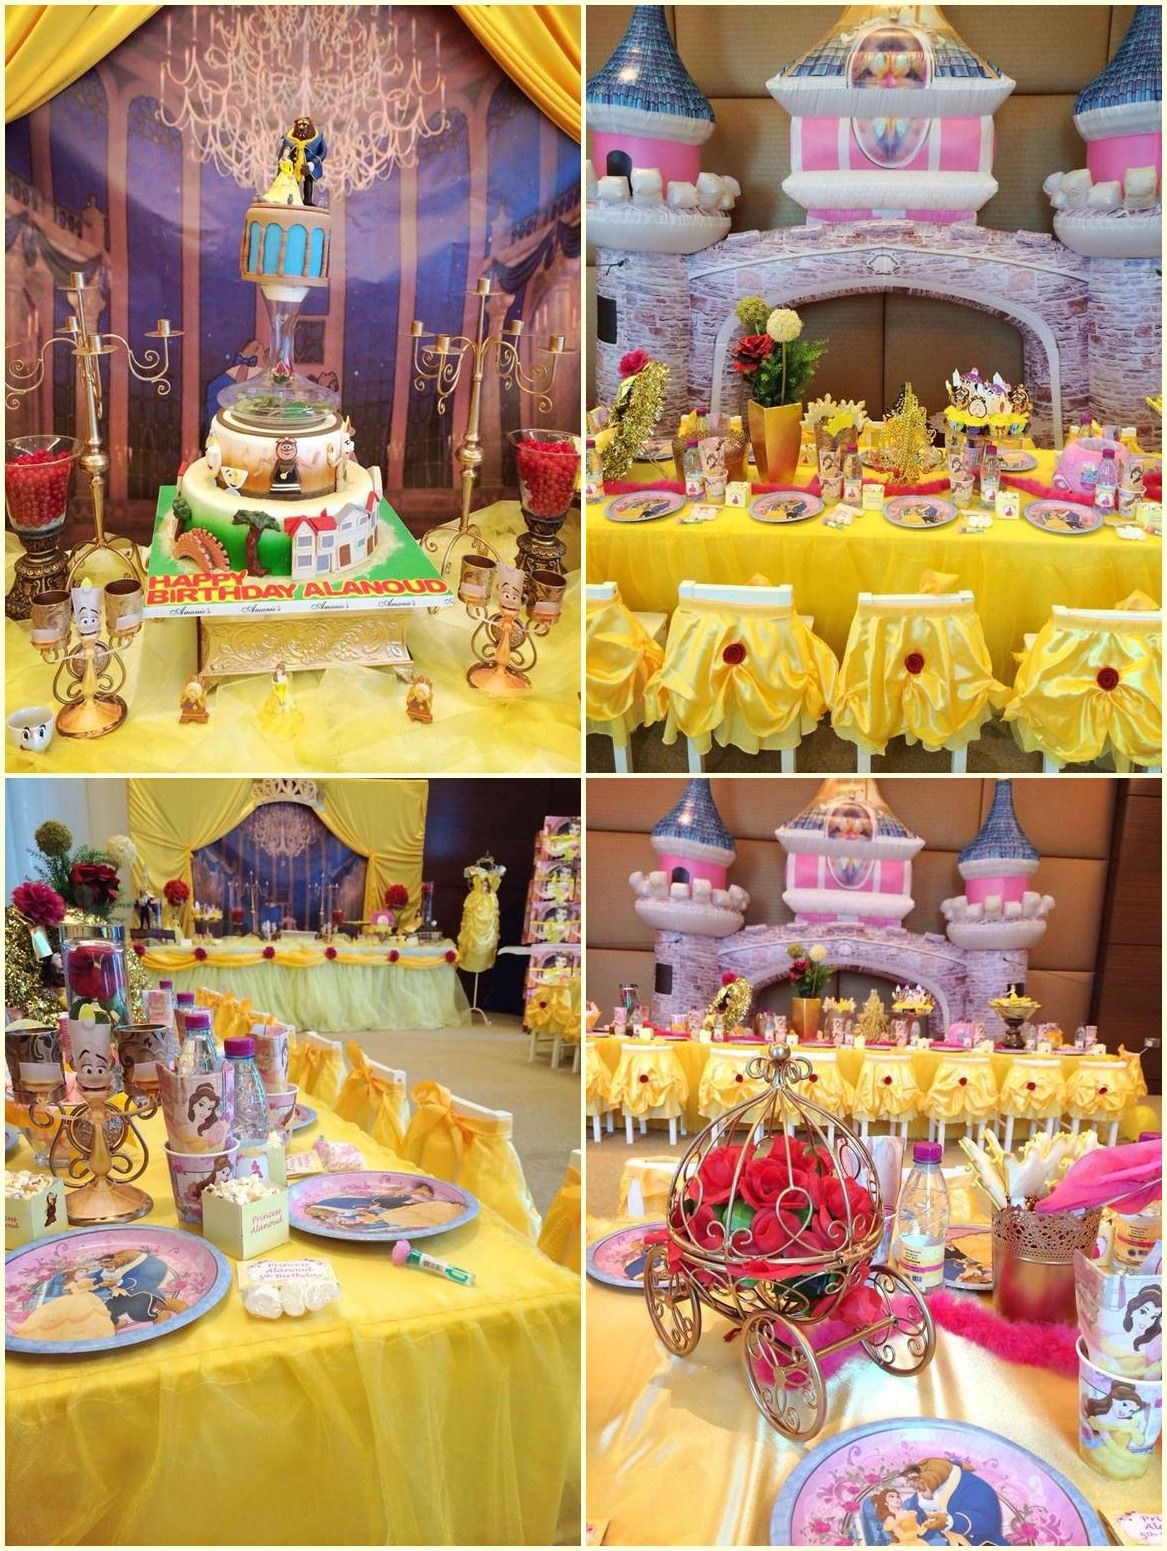 beauty and the beast party decoration ideas jemsslie belle party pinterest beast. Black Bedroom Furniture Sets. Home Design Ideas